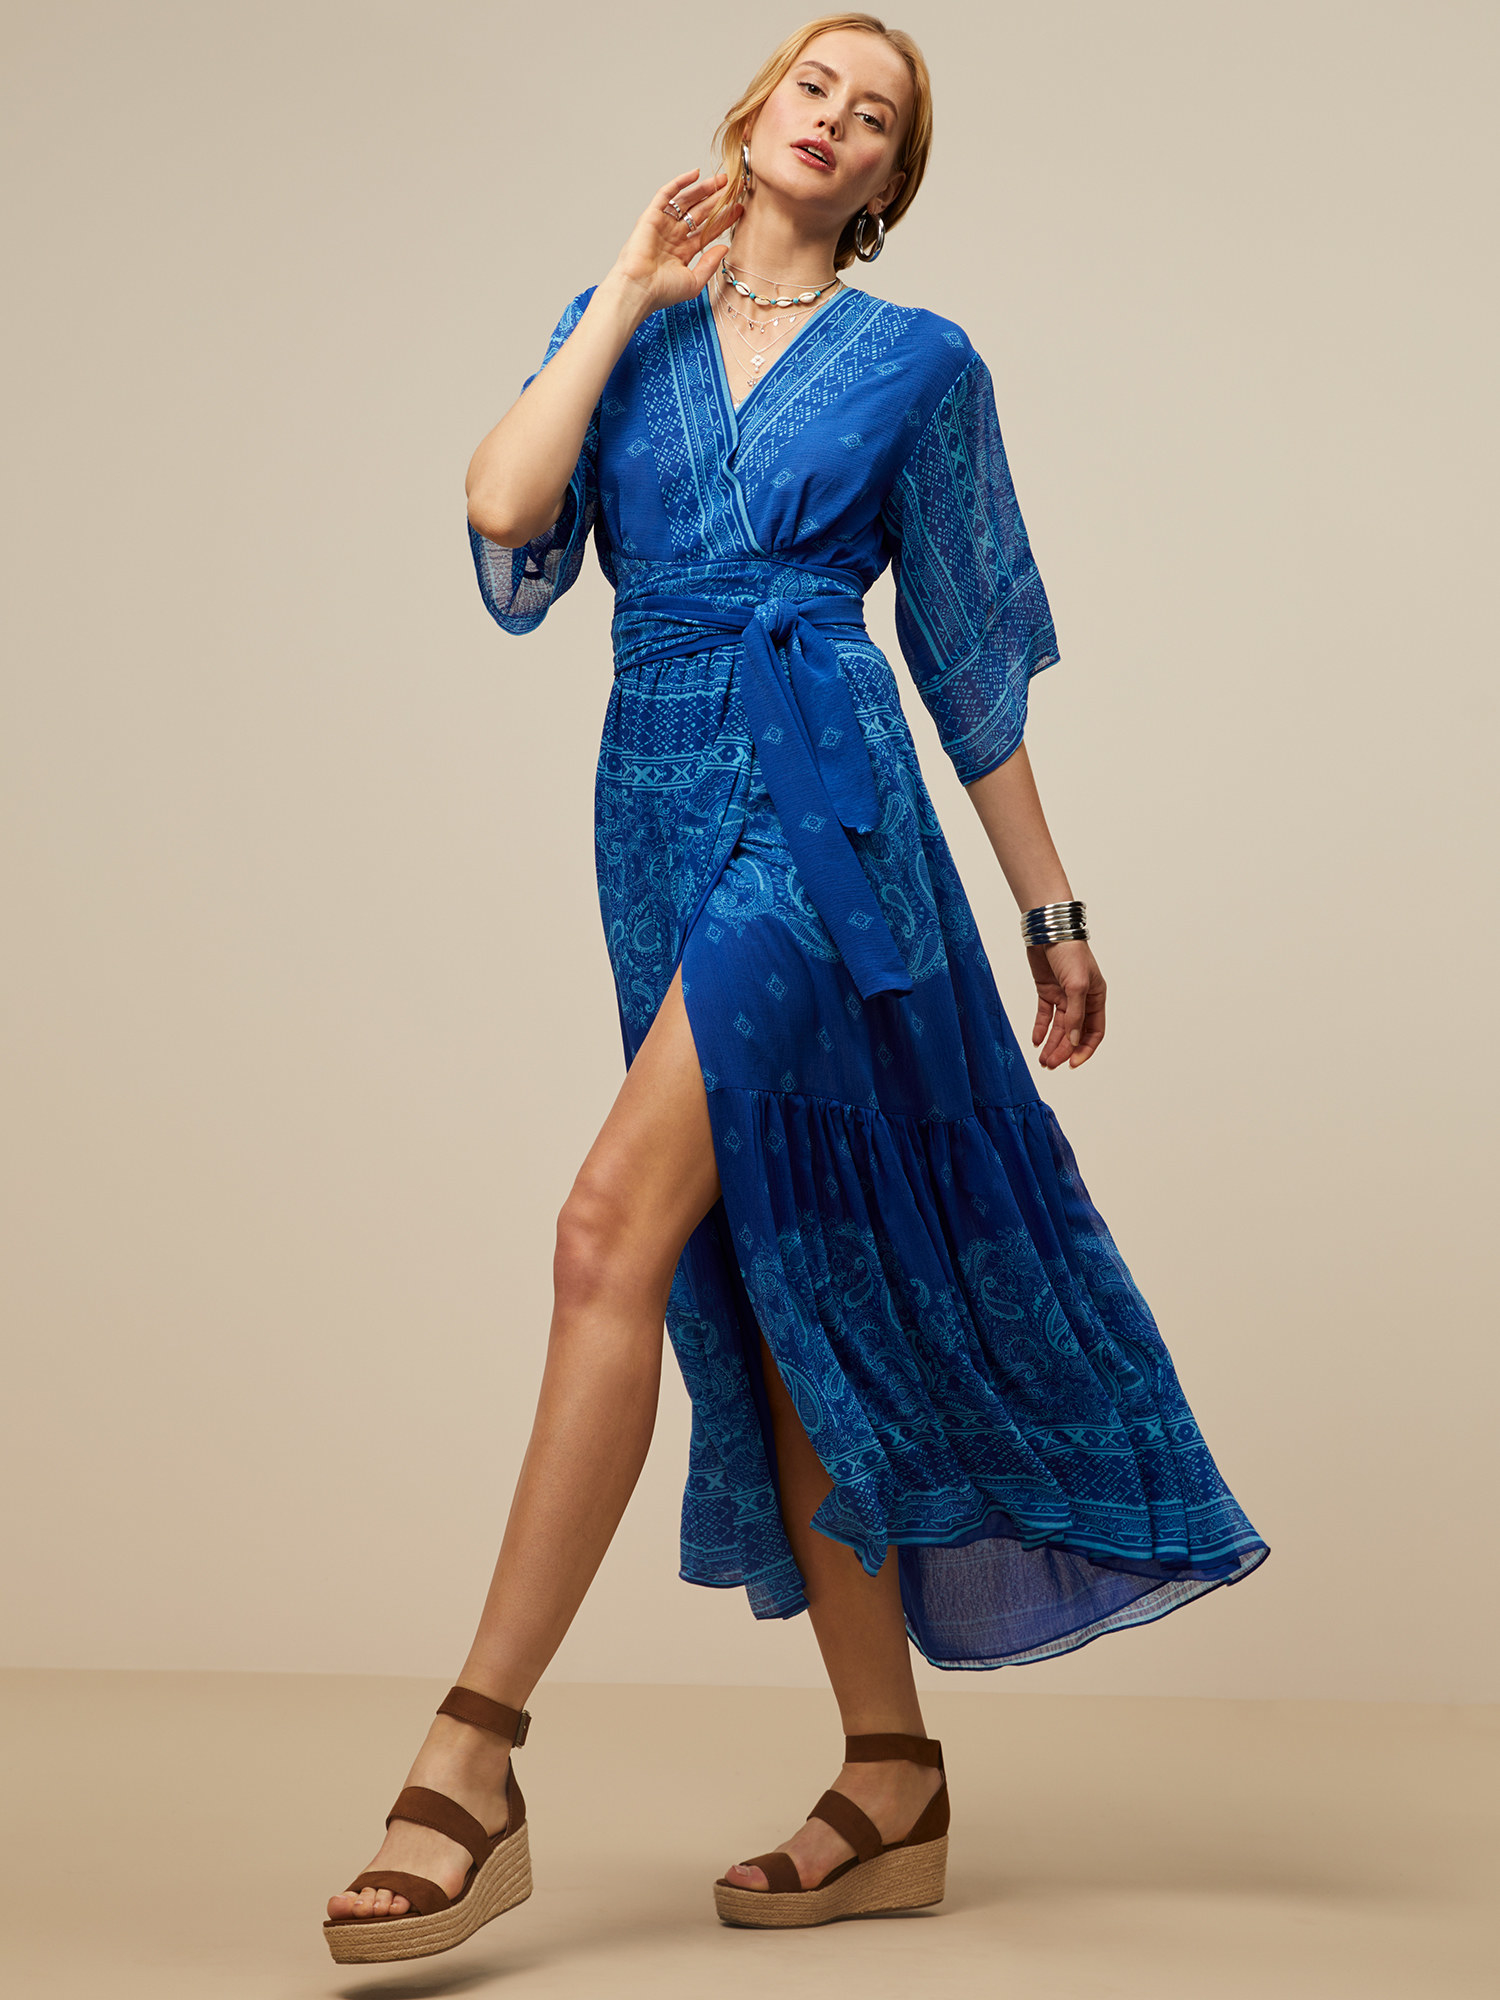 model in a maxi wrap dress in blue paisley with a slit skirt and 3/4 sleeves